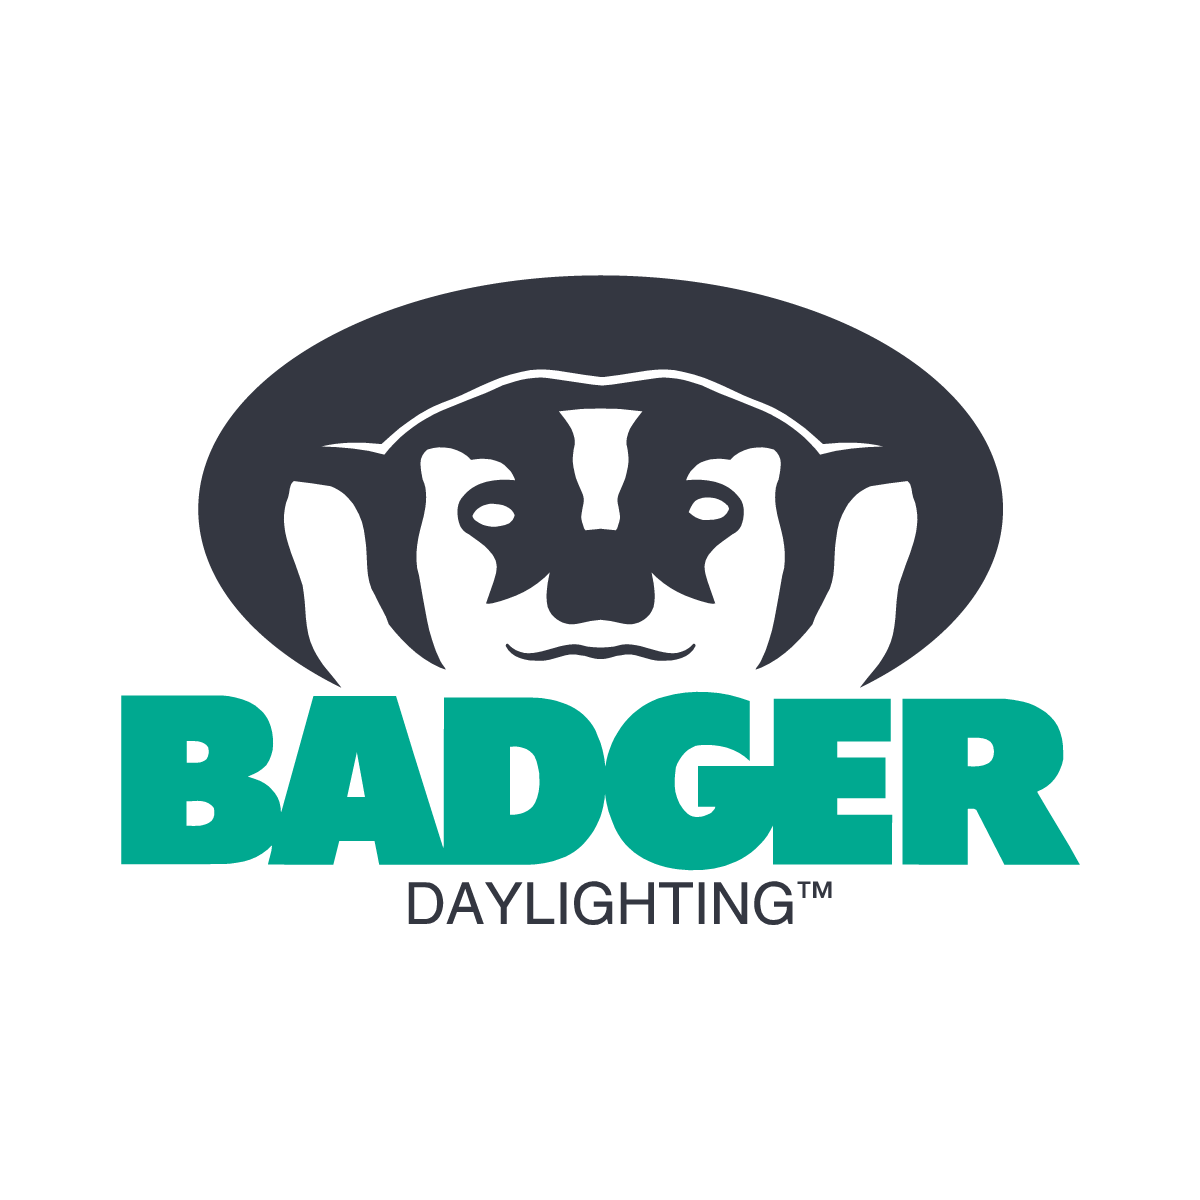 Badger Daylighting™ - Hydrovac Services Company in Canada and the USA